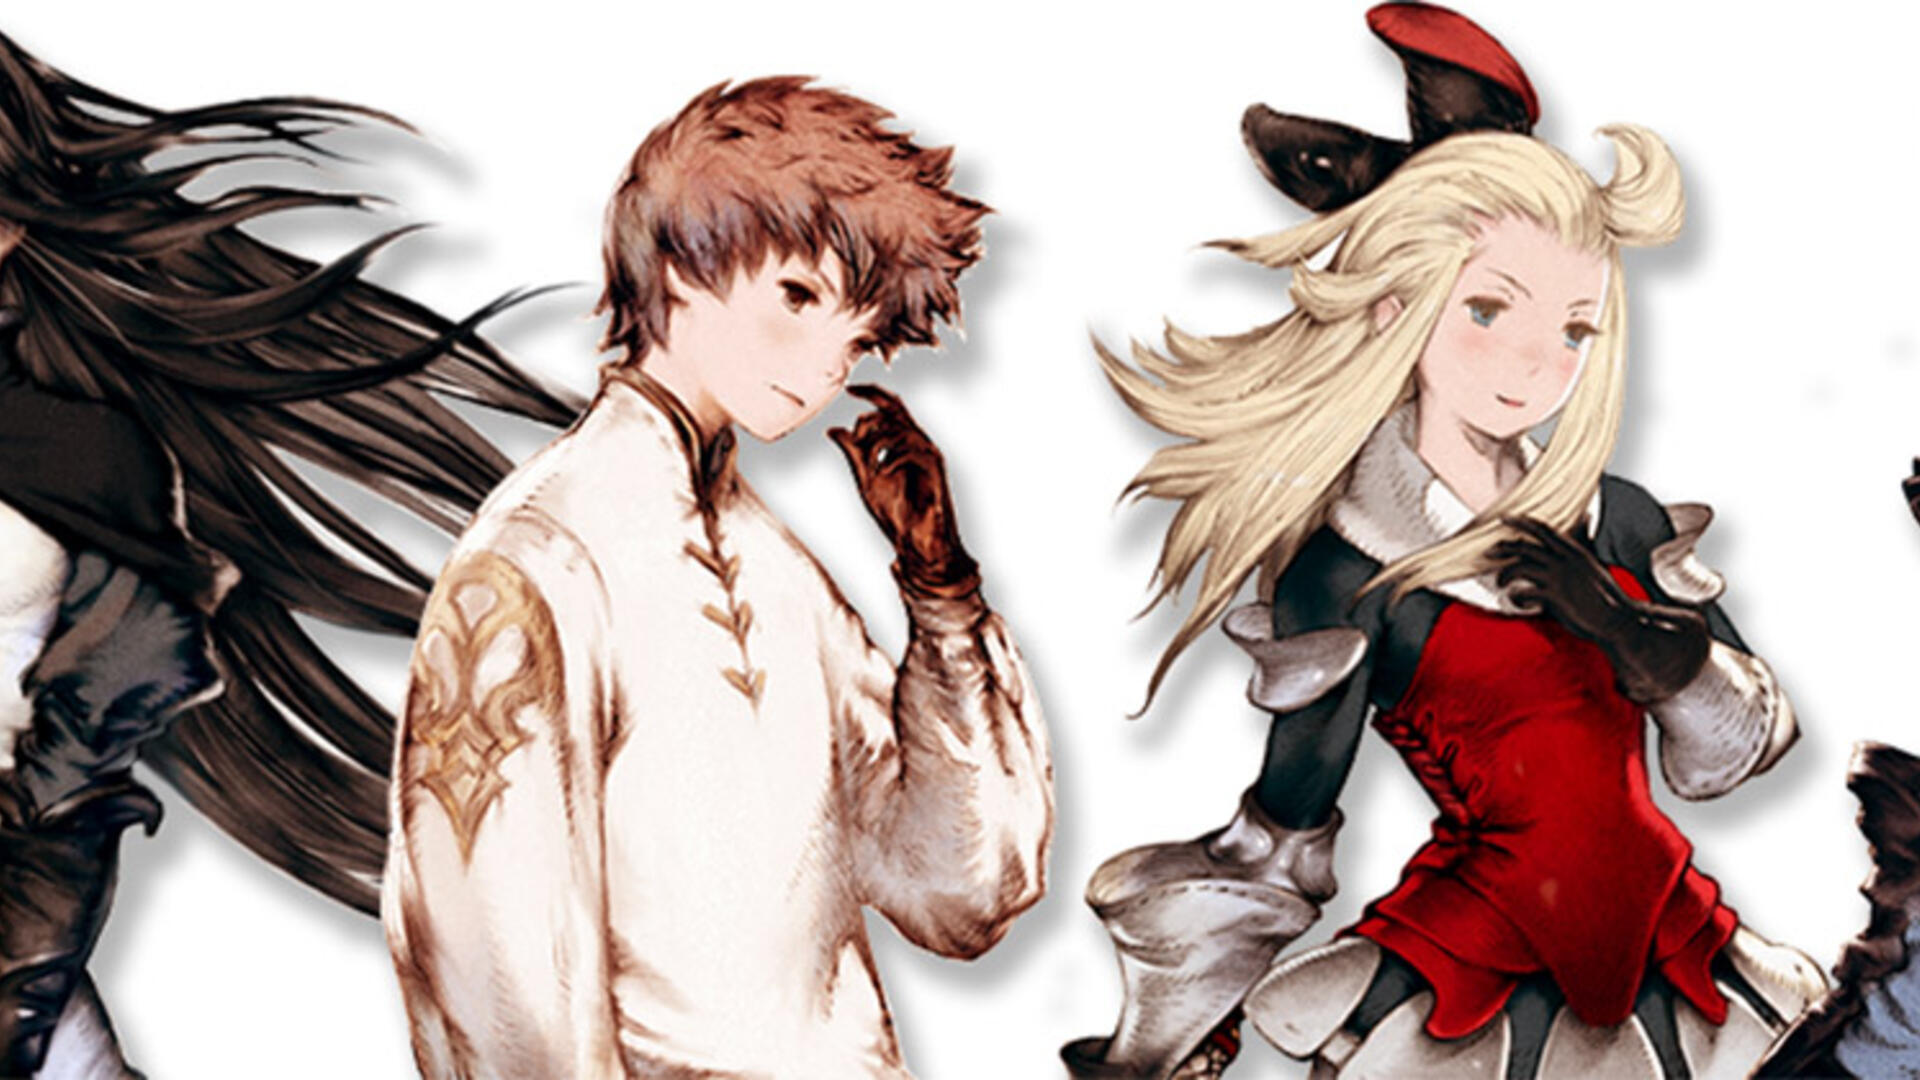 Bravely Default Celebrates Its Fourth Birthday With a Twitter Teaser